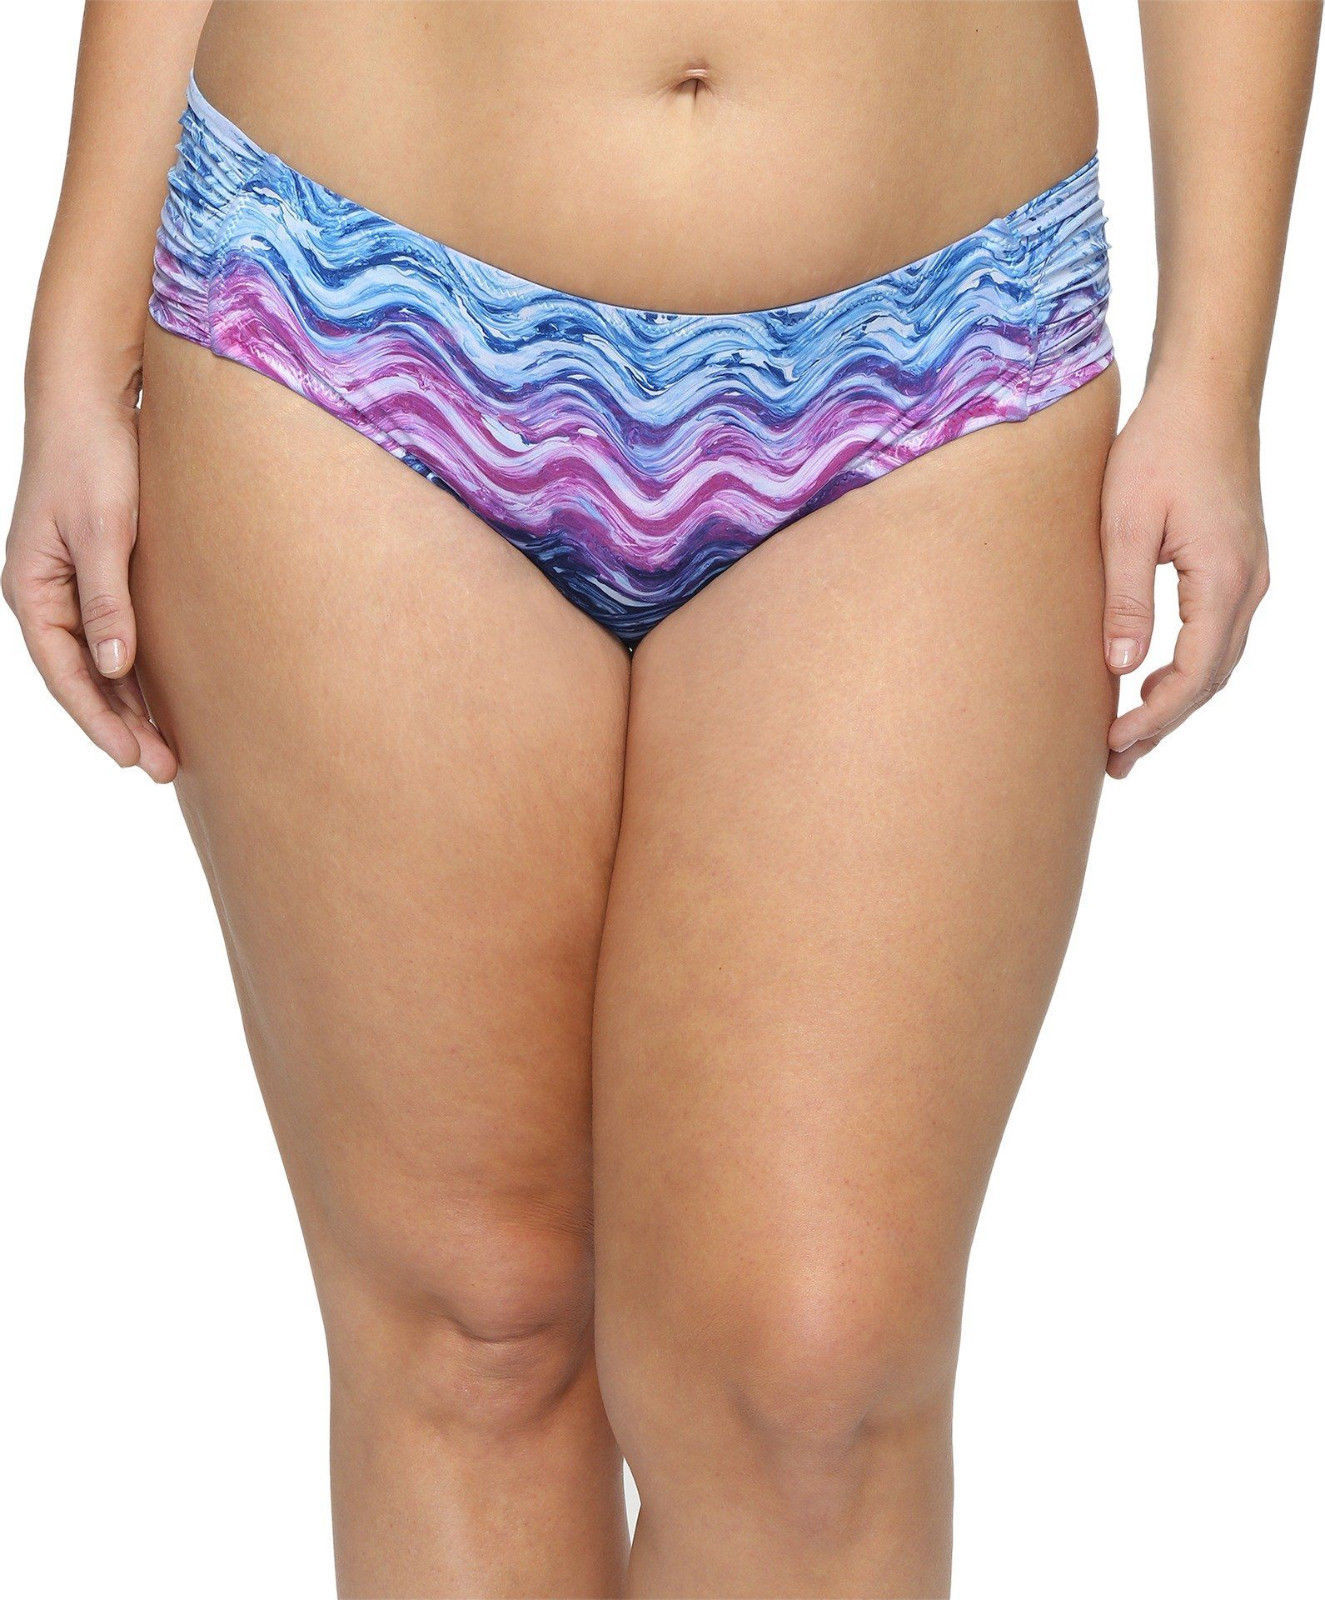 Primary image for  NEW BECCA Cosmic Tab Sides Tie Dye Marble Plus Size Bikini Bottom 1X 16-18